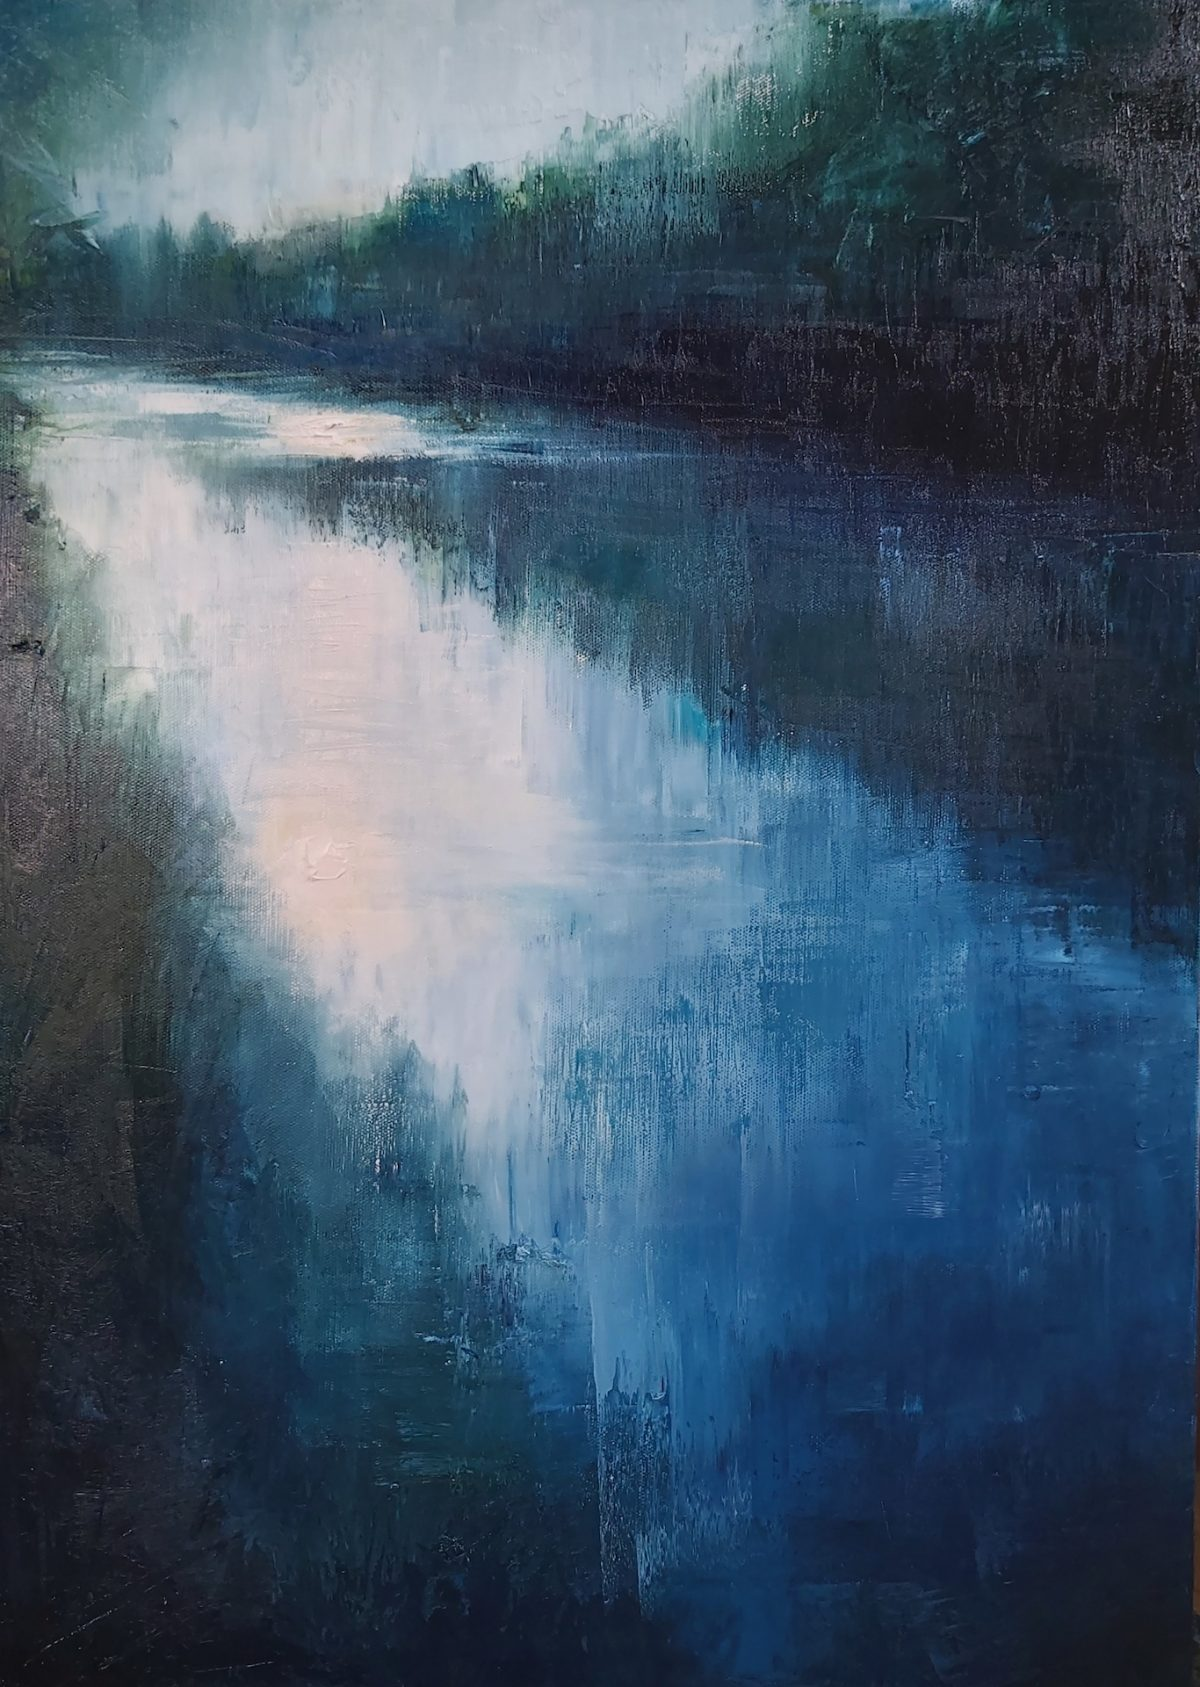 The River. 50/70cm. Oil on Linen. 2020. Landscape painting Norfolk Broads